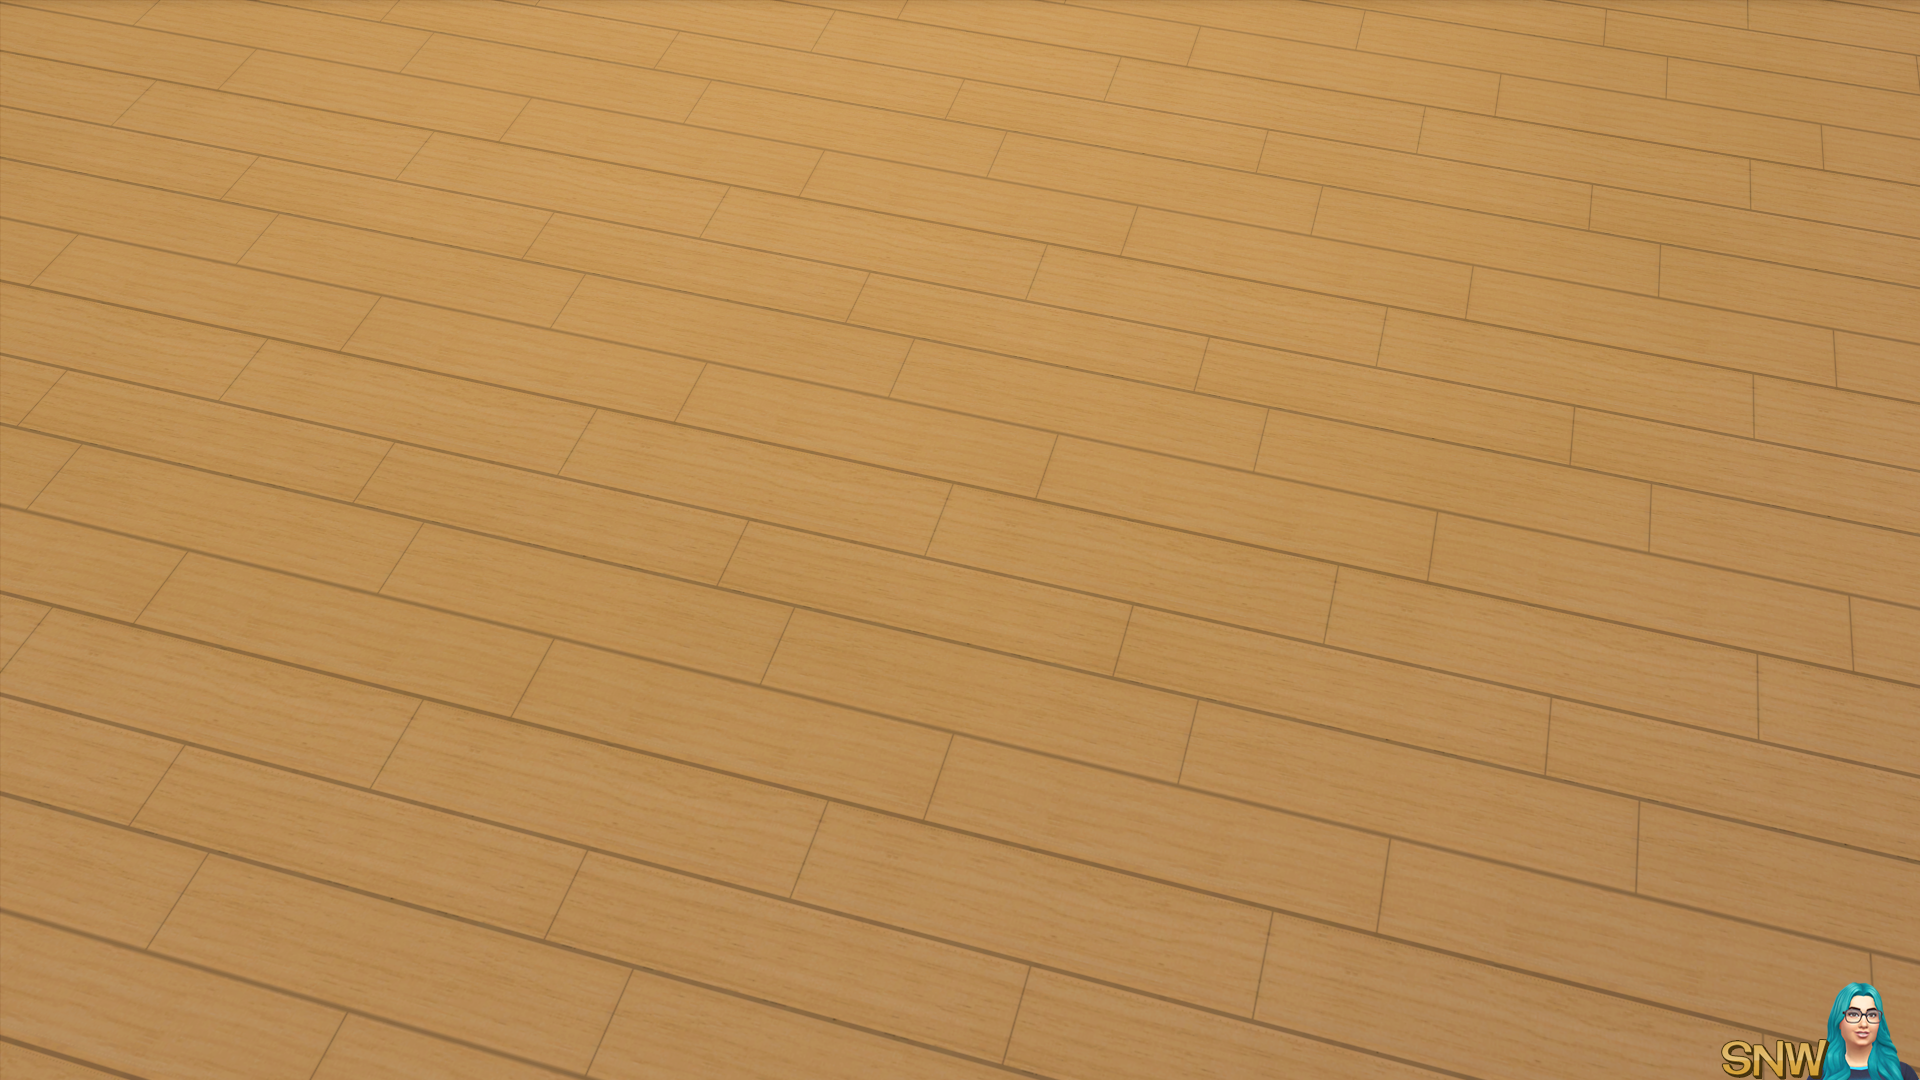 The Sims 4 downloads wooden wide planks floor